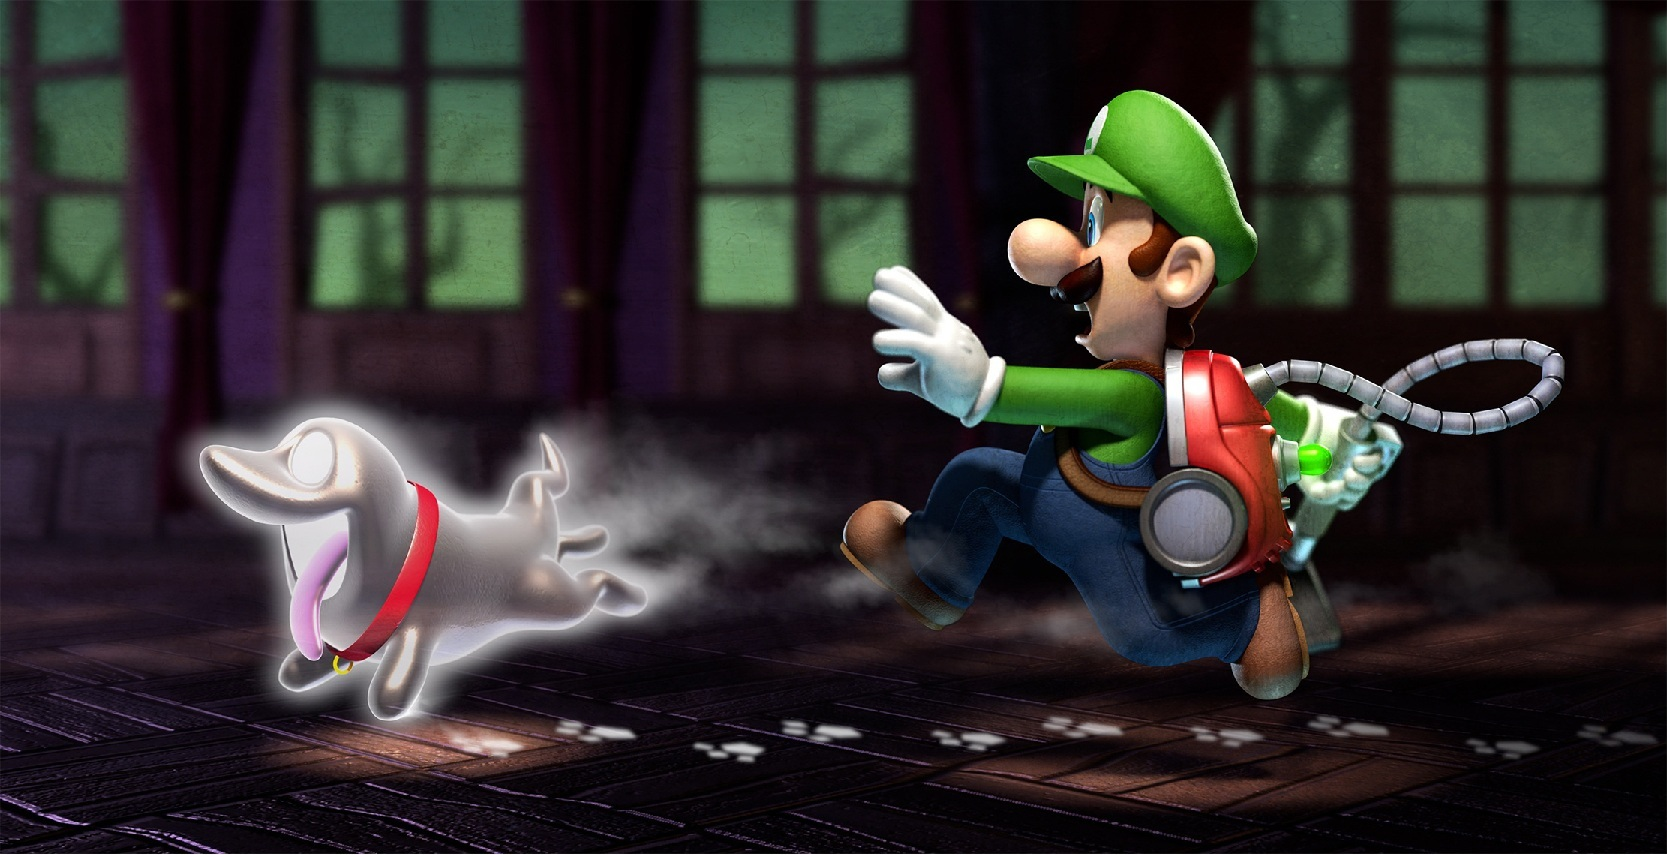 Luigi's Mansion Dev, Next Level Games, Working Exclusively With Nintendo